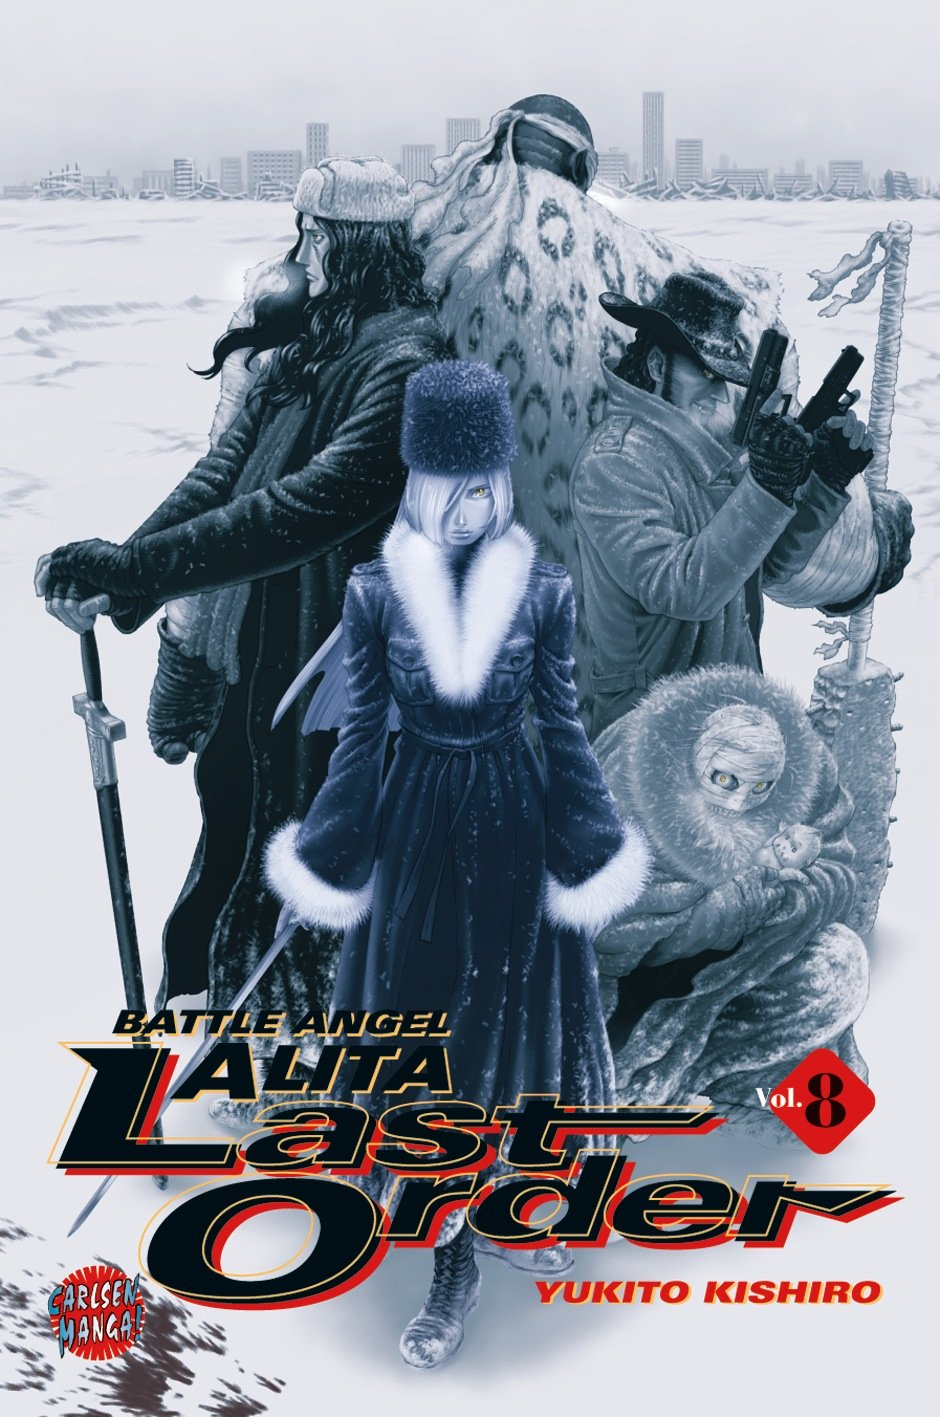 Battle Angel Alita. Last Order 8